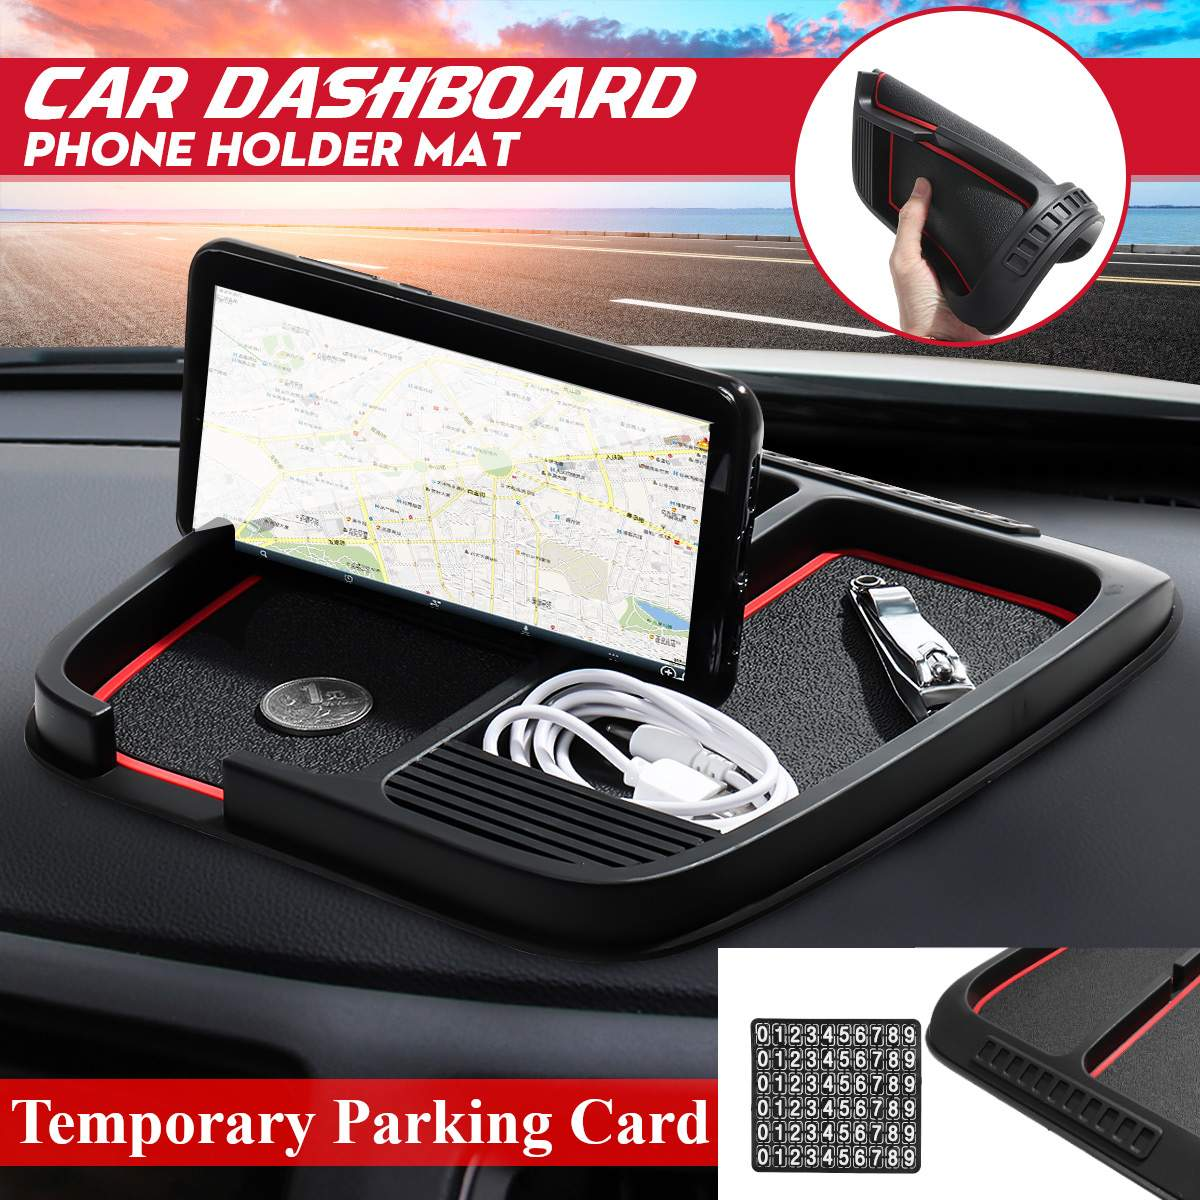 Car Silicone Rubber Dashboard Panel Mat Phone Mount Holder Temporary Parking Card Phone Number Sticker Holder Anti-Slip Mat